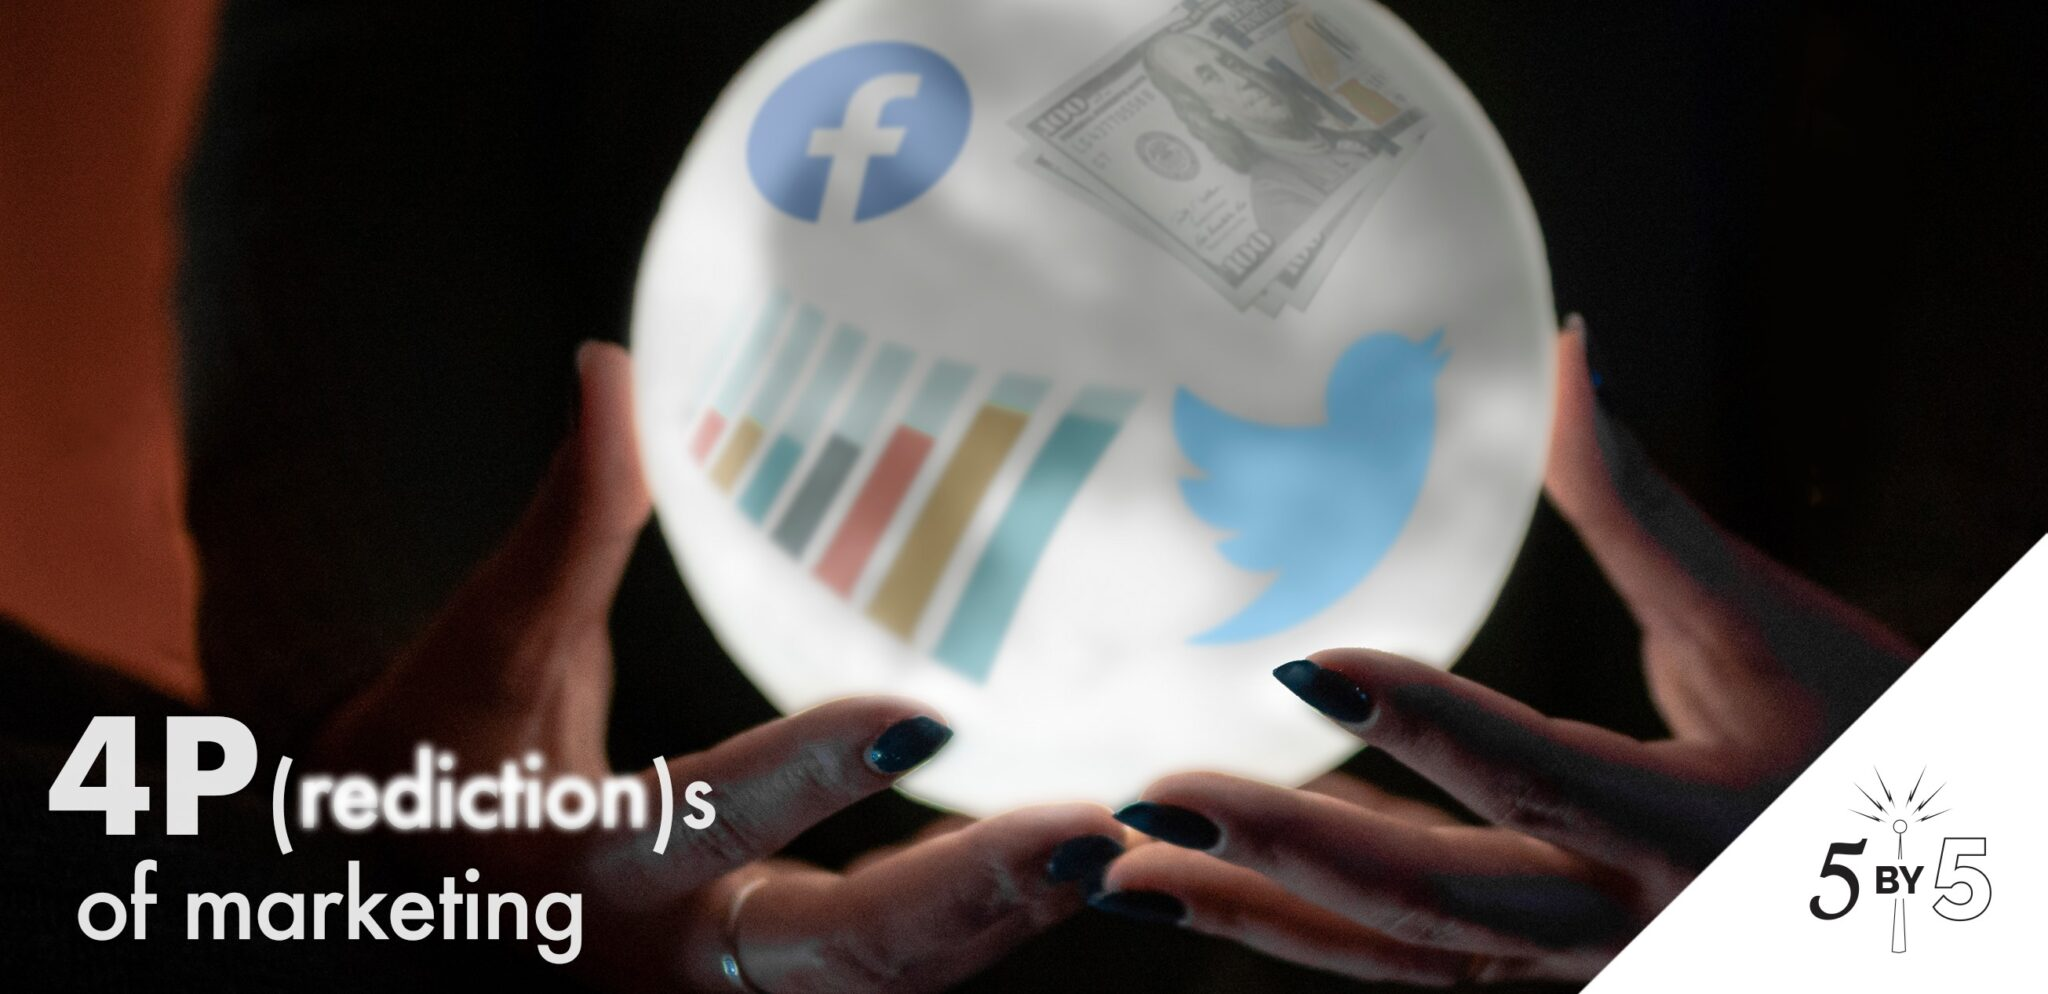 crystal ball with FB and TW logos and data graph